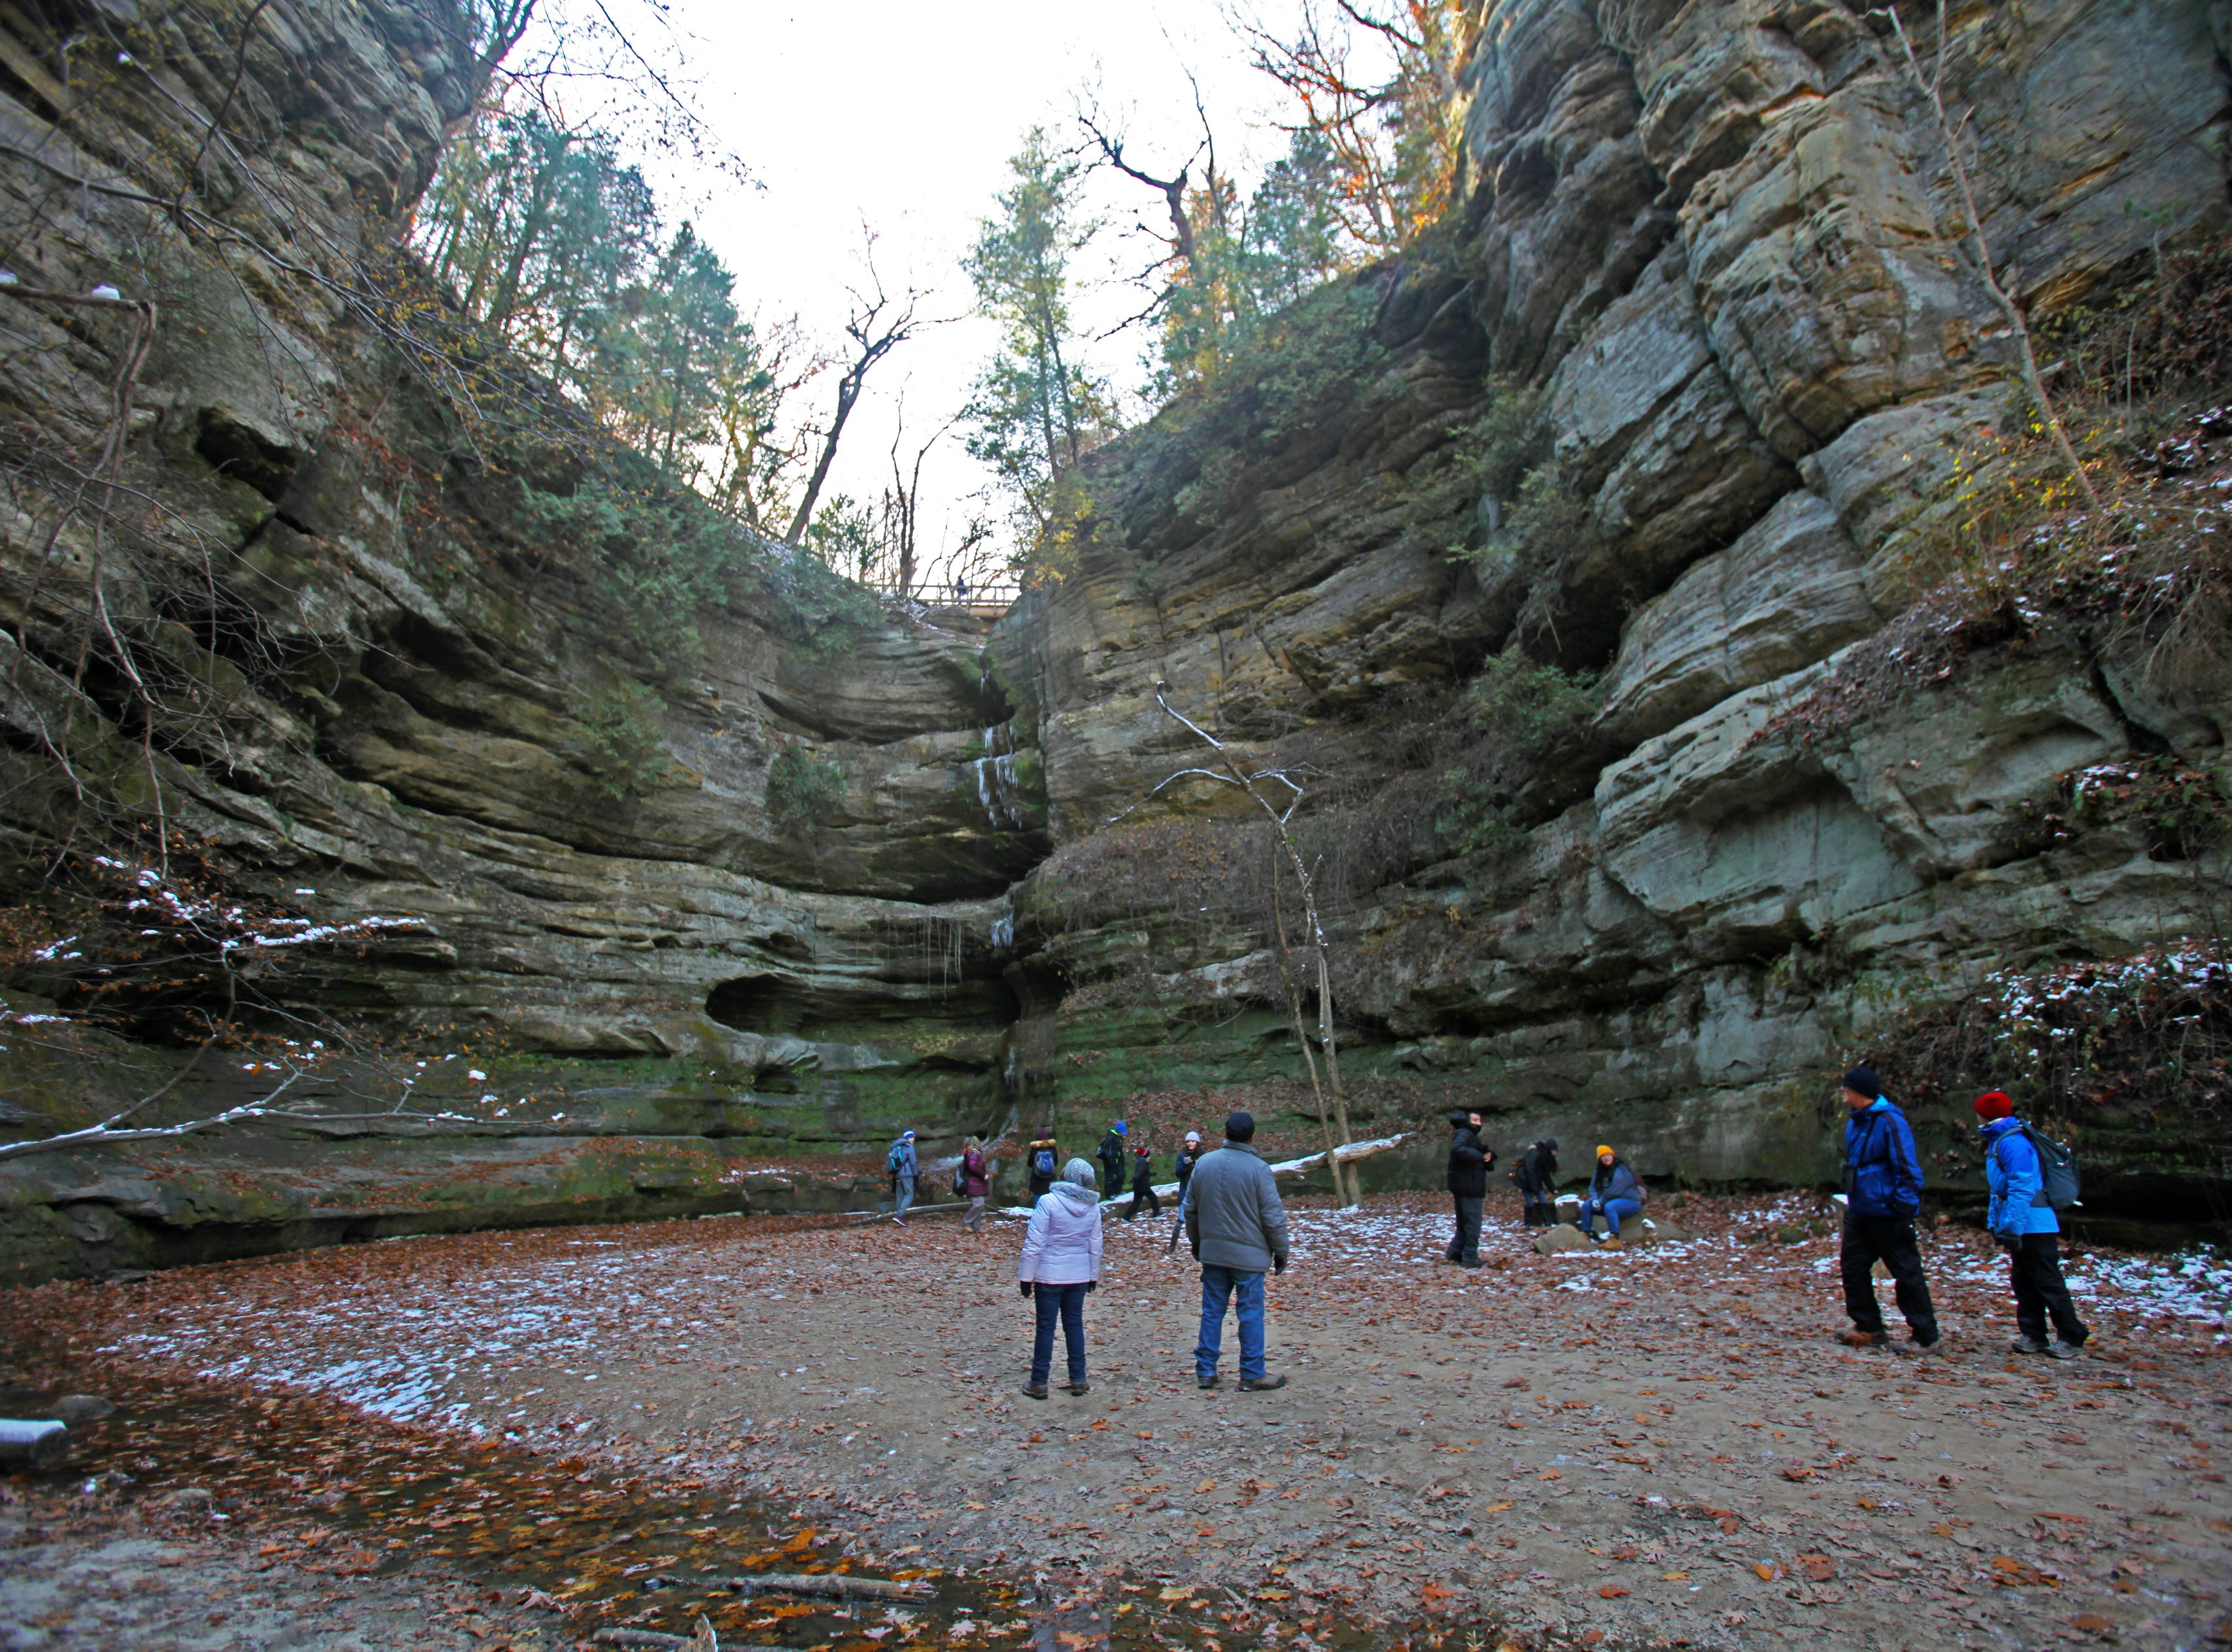 The walls of Wildcat Canyon rise high above hikers at Starved Rock State Park near Utica, Illinois.